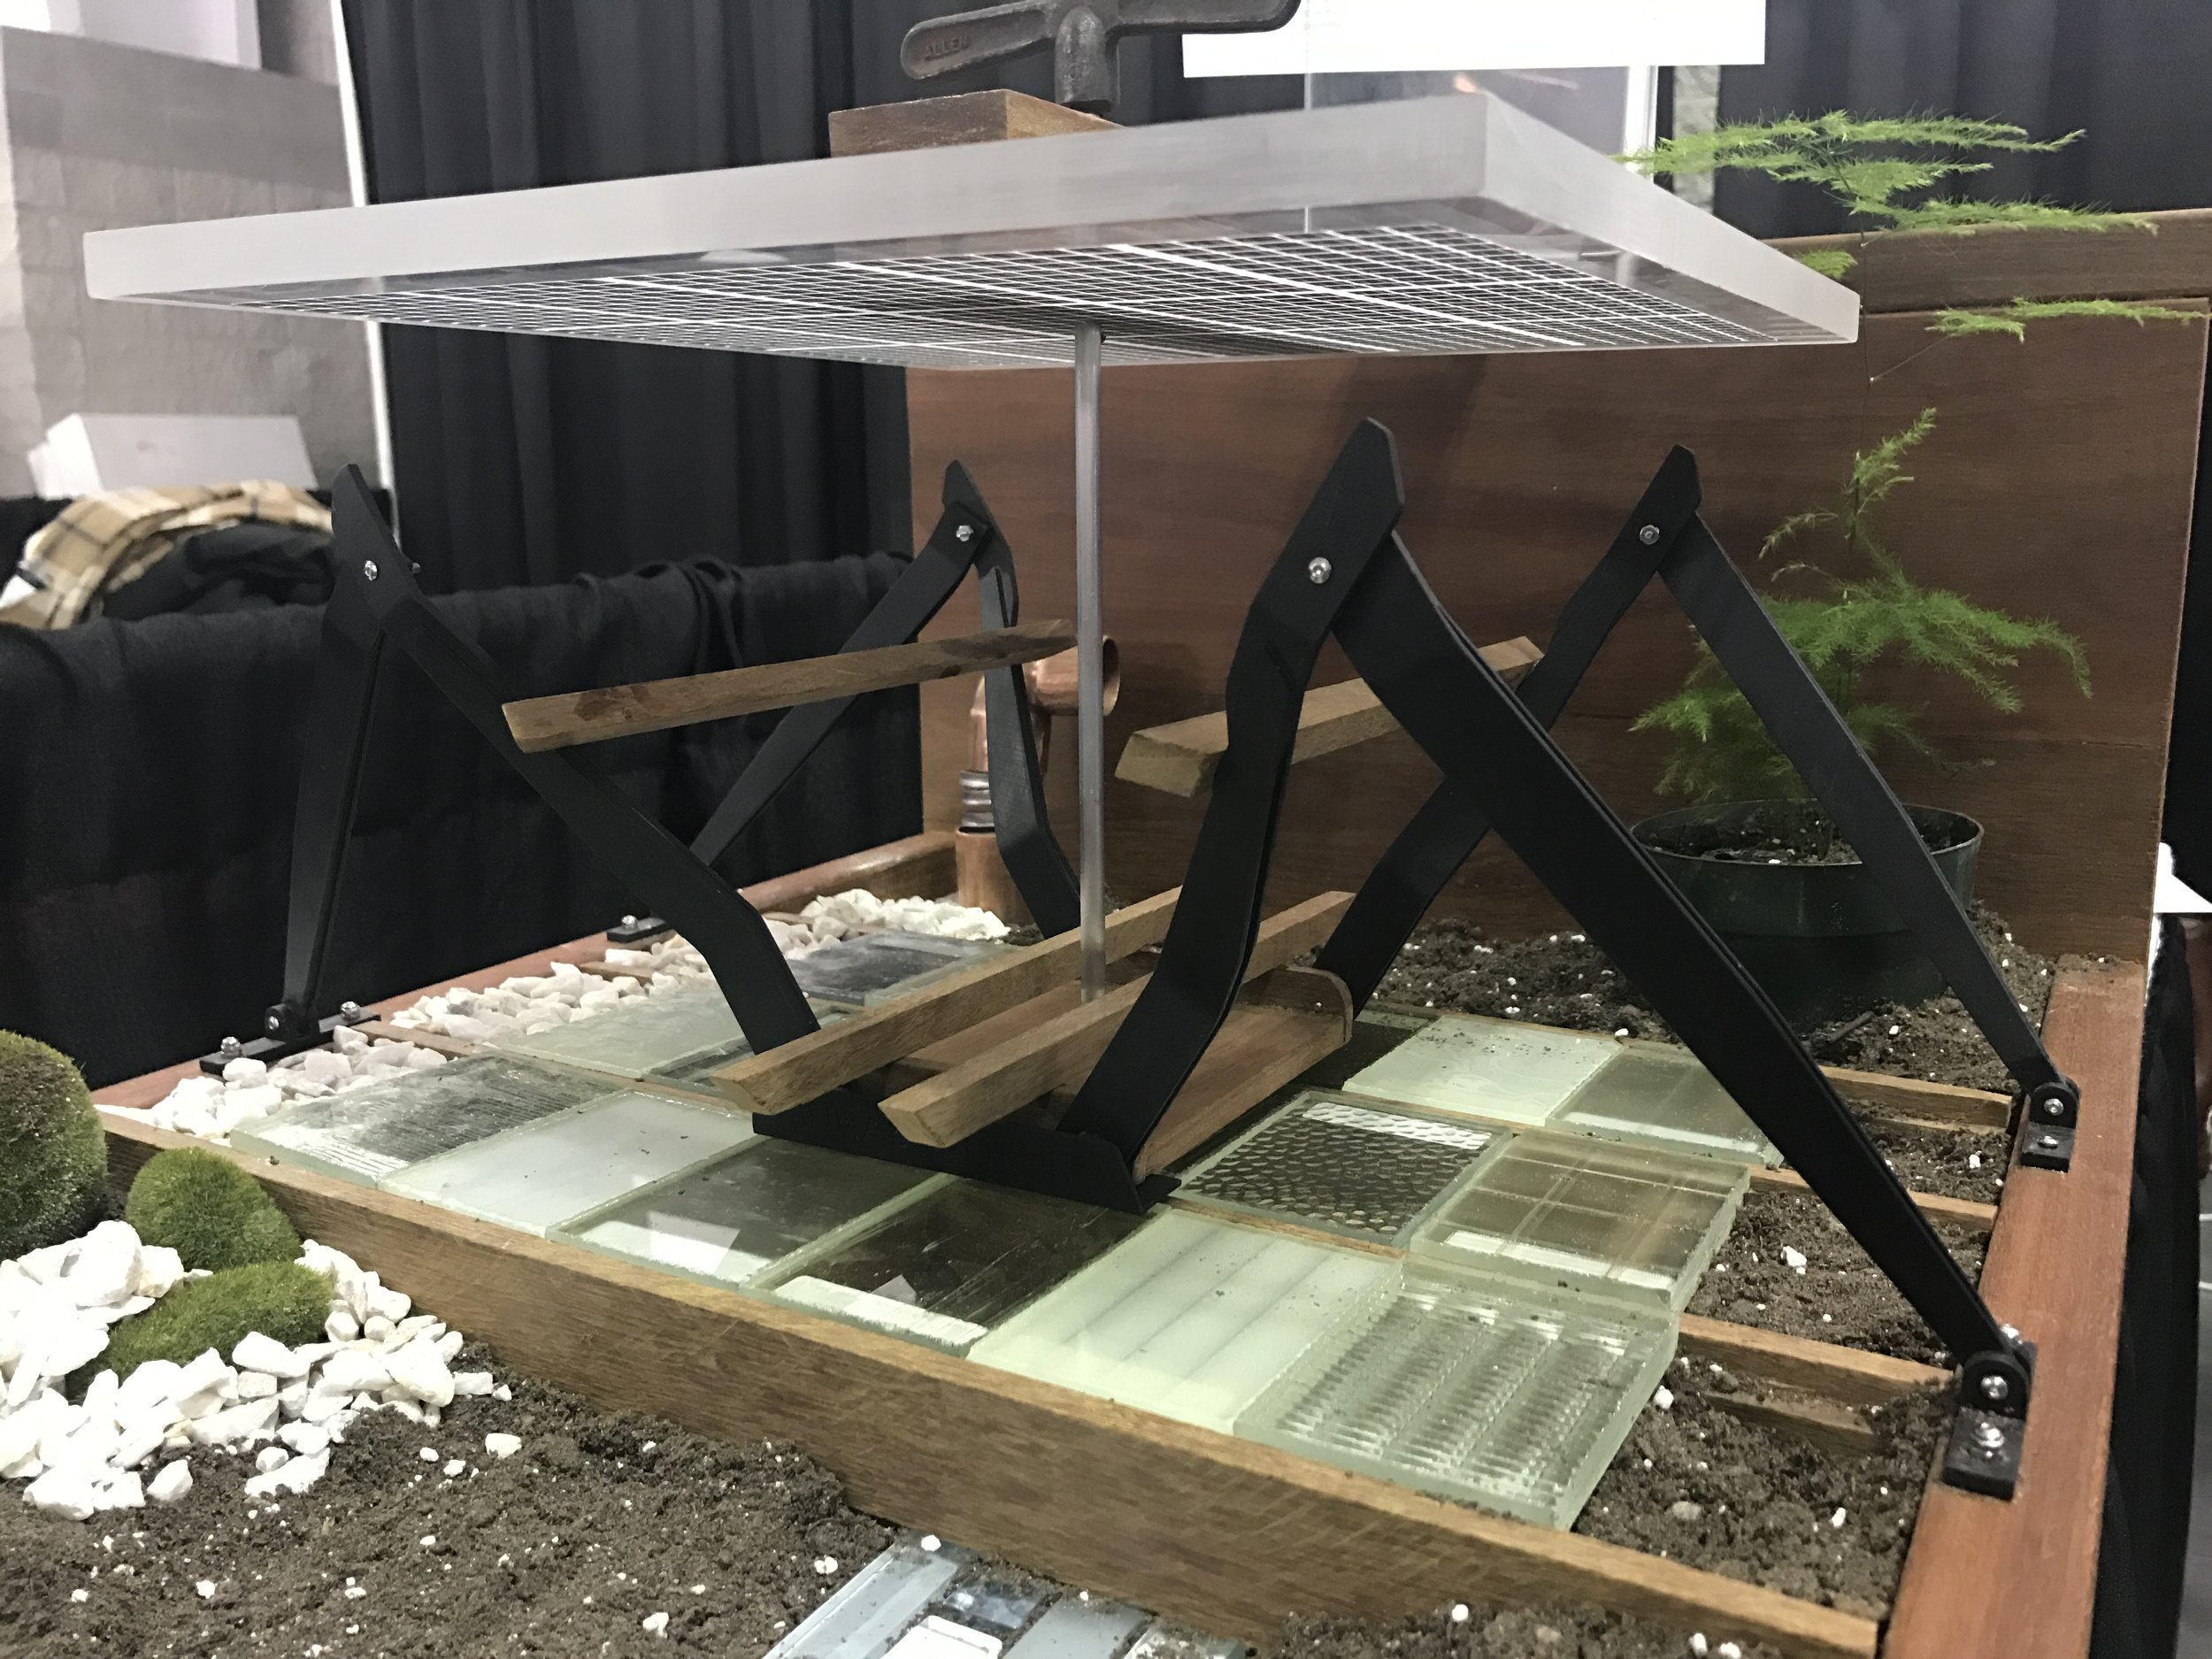 inhabit SOLAR model cabana